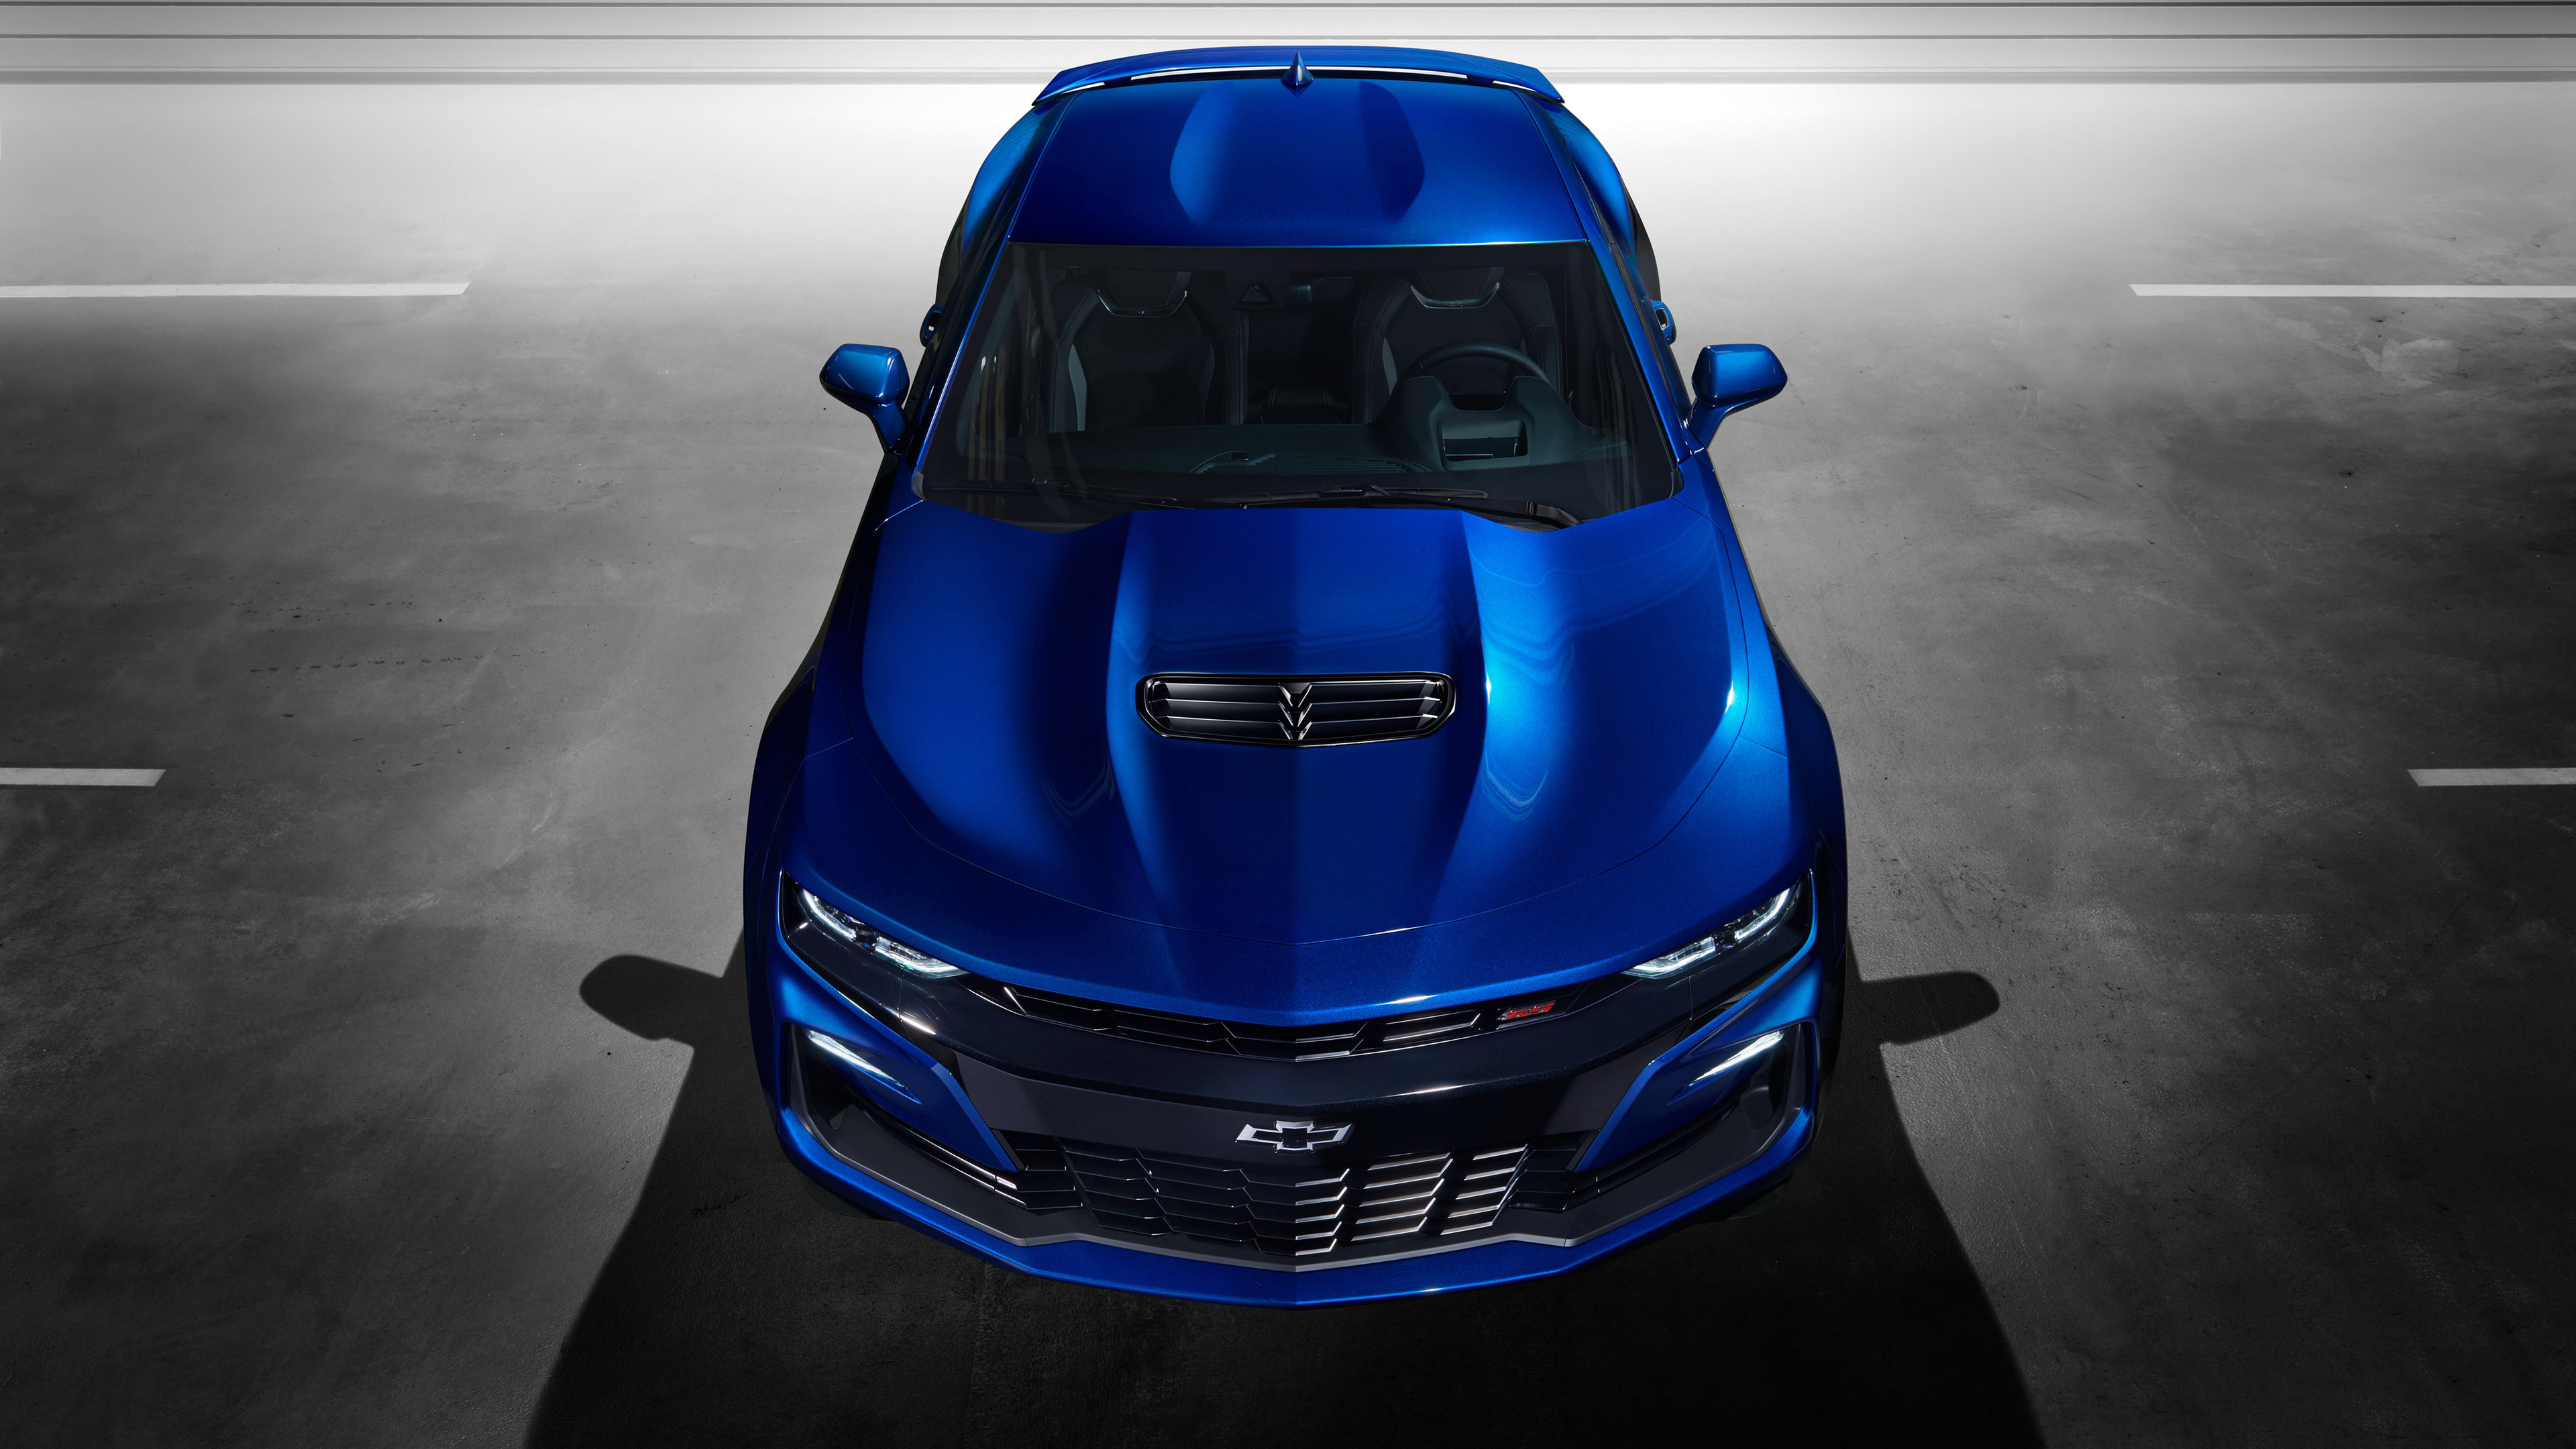 chevrolet camaro ss 2018 1539110731 - Chevrolet Camaro SS 2018 - hd-wallpapers, chevrolet wallpapers, chevrolet camaro wallpapers, cars wallpapers, 4k-wallpapers, 2018 cars wallpapers